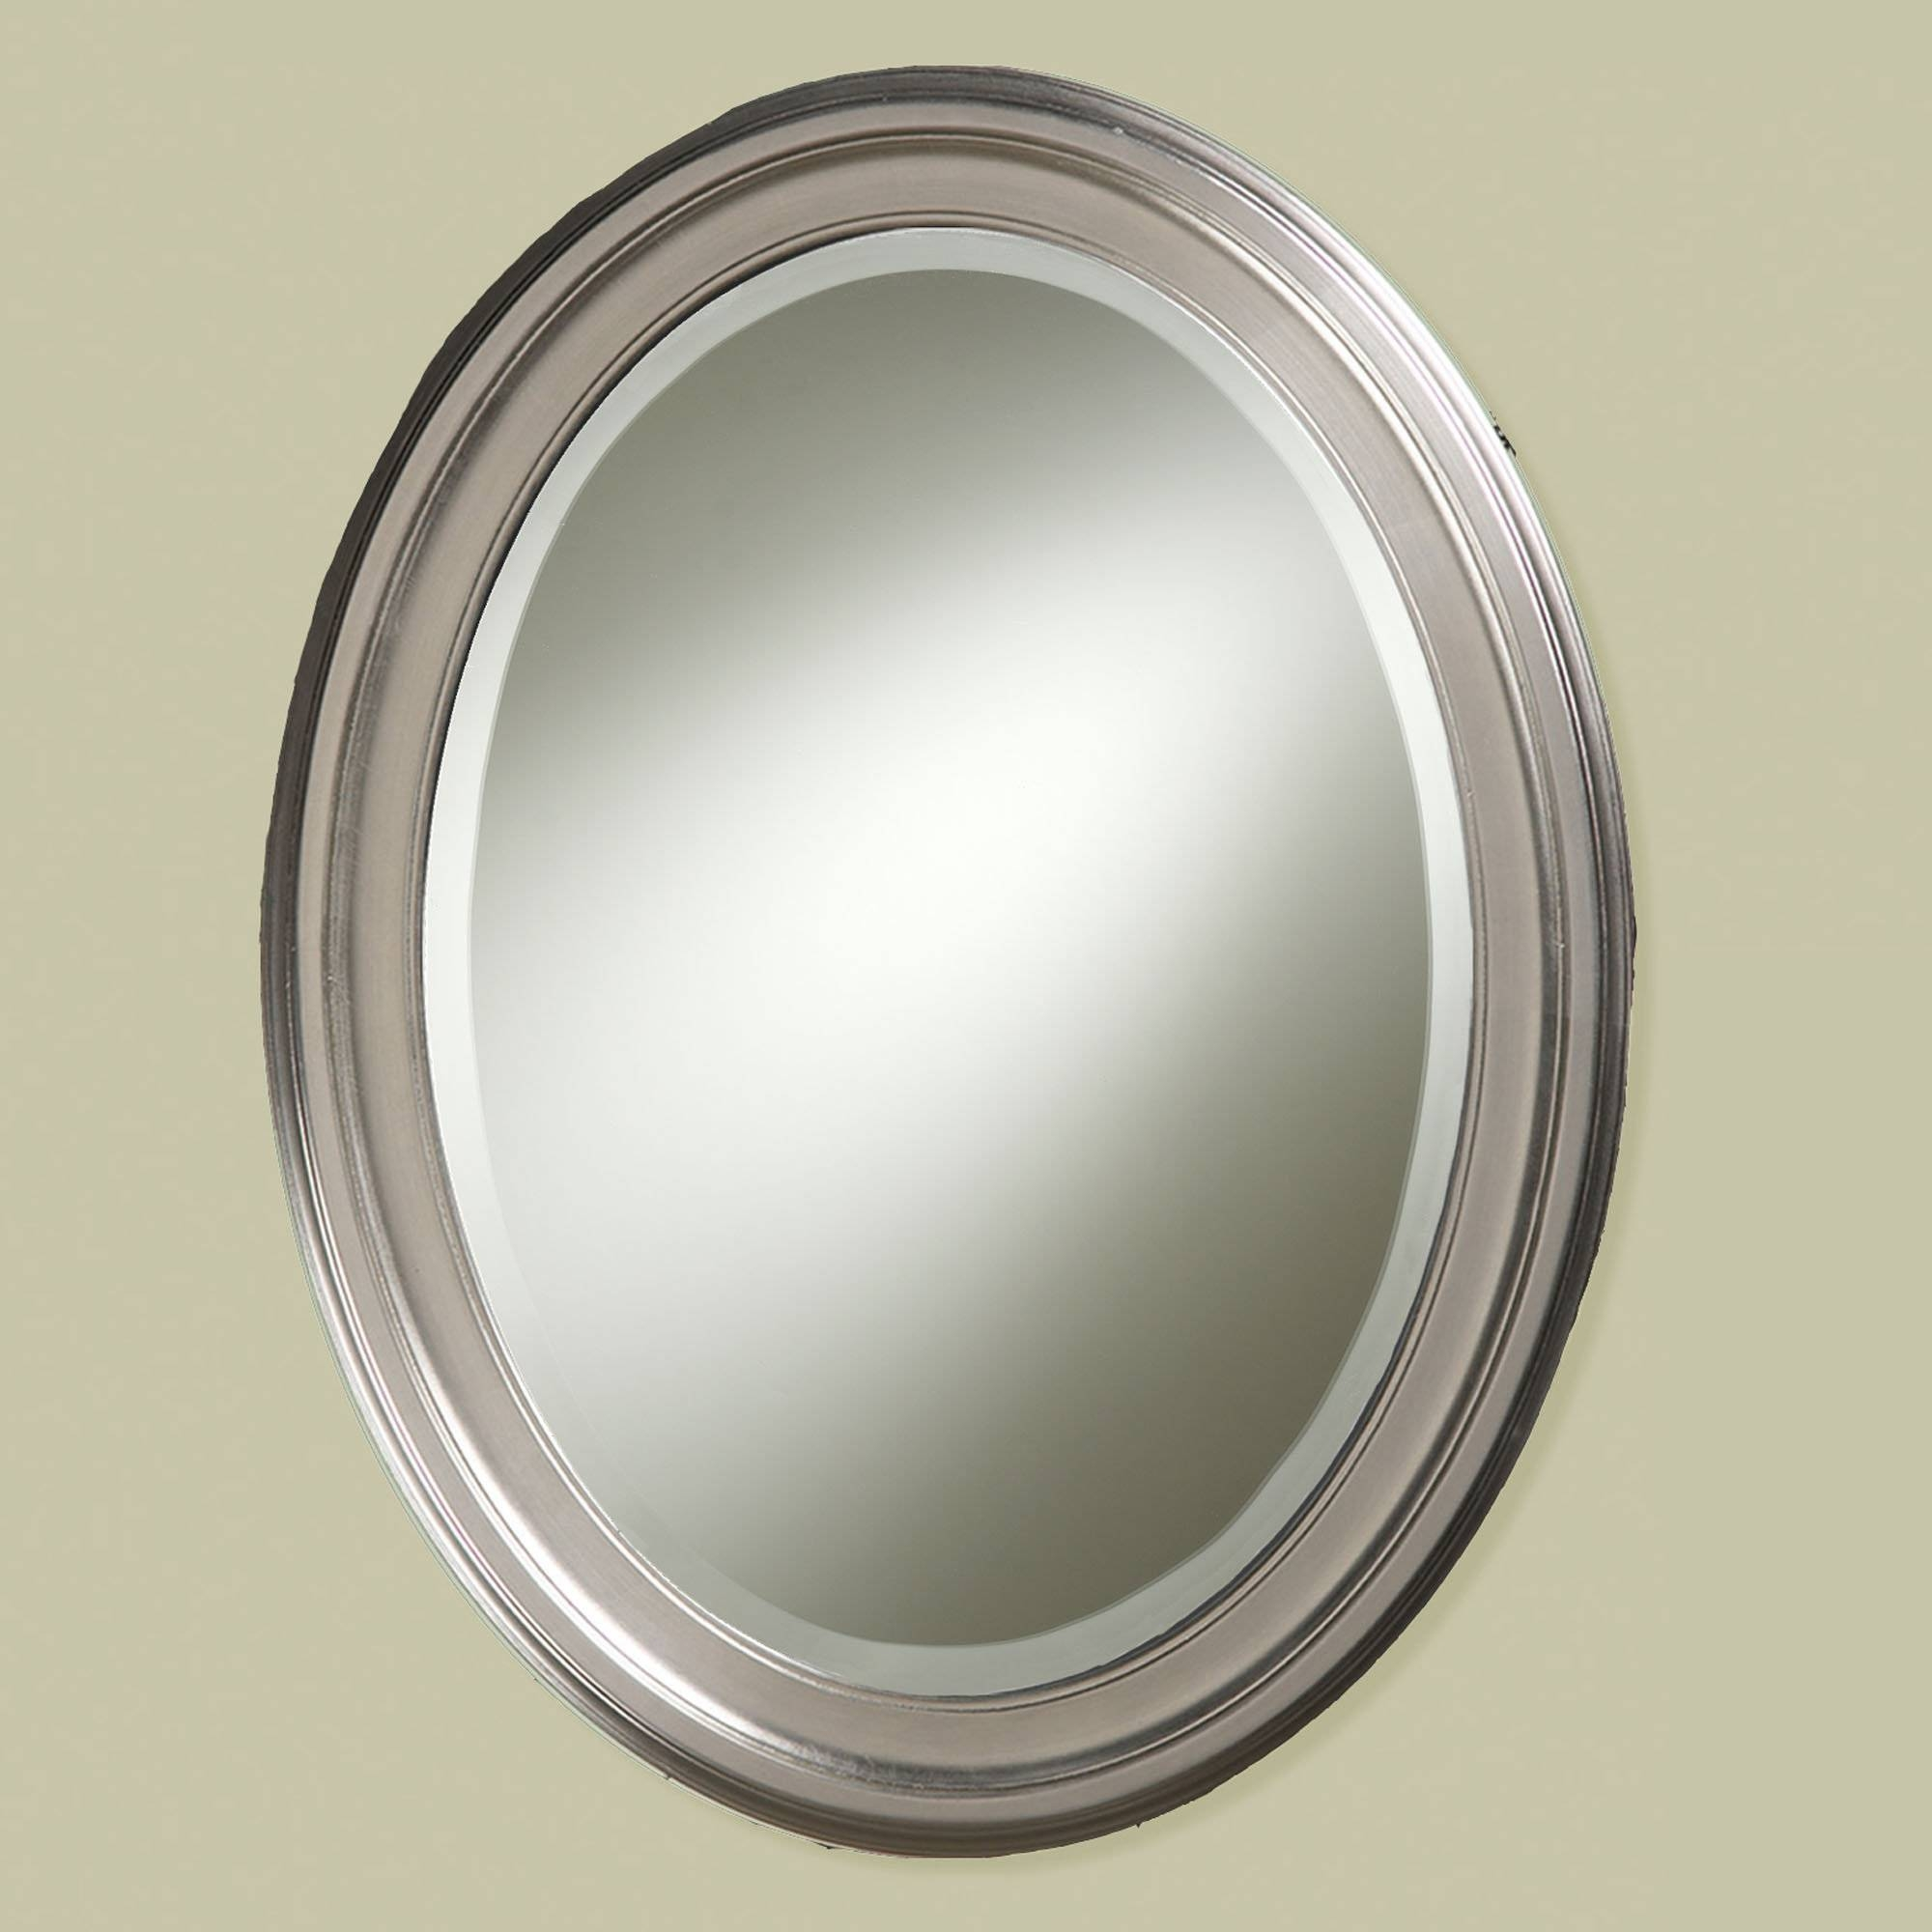 Bathroom Wall Mirrors Brushed Nickel 49 Trendy Interior Or Brushed Throughout Silver Oval Wall Mirrors (View 5 of 25)